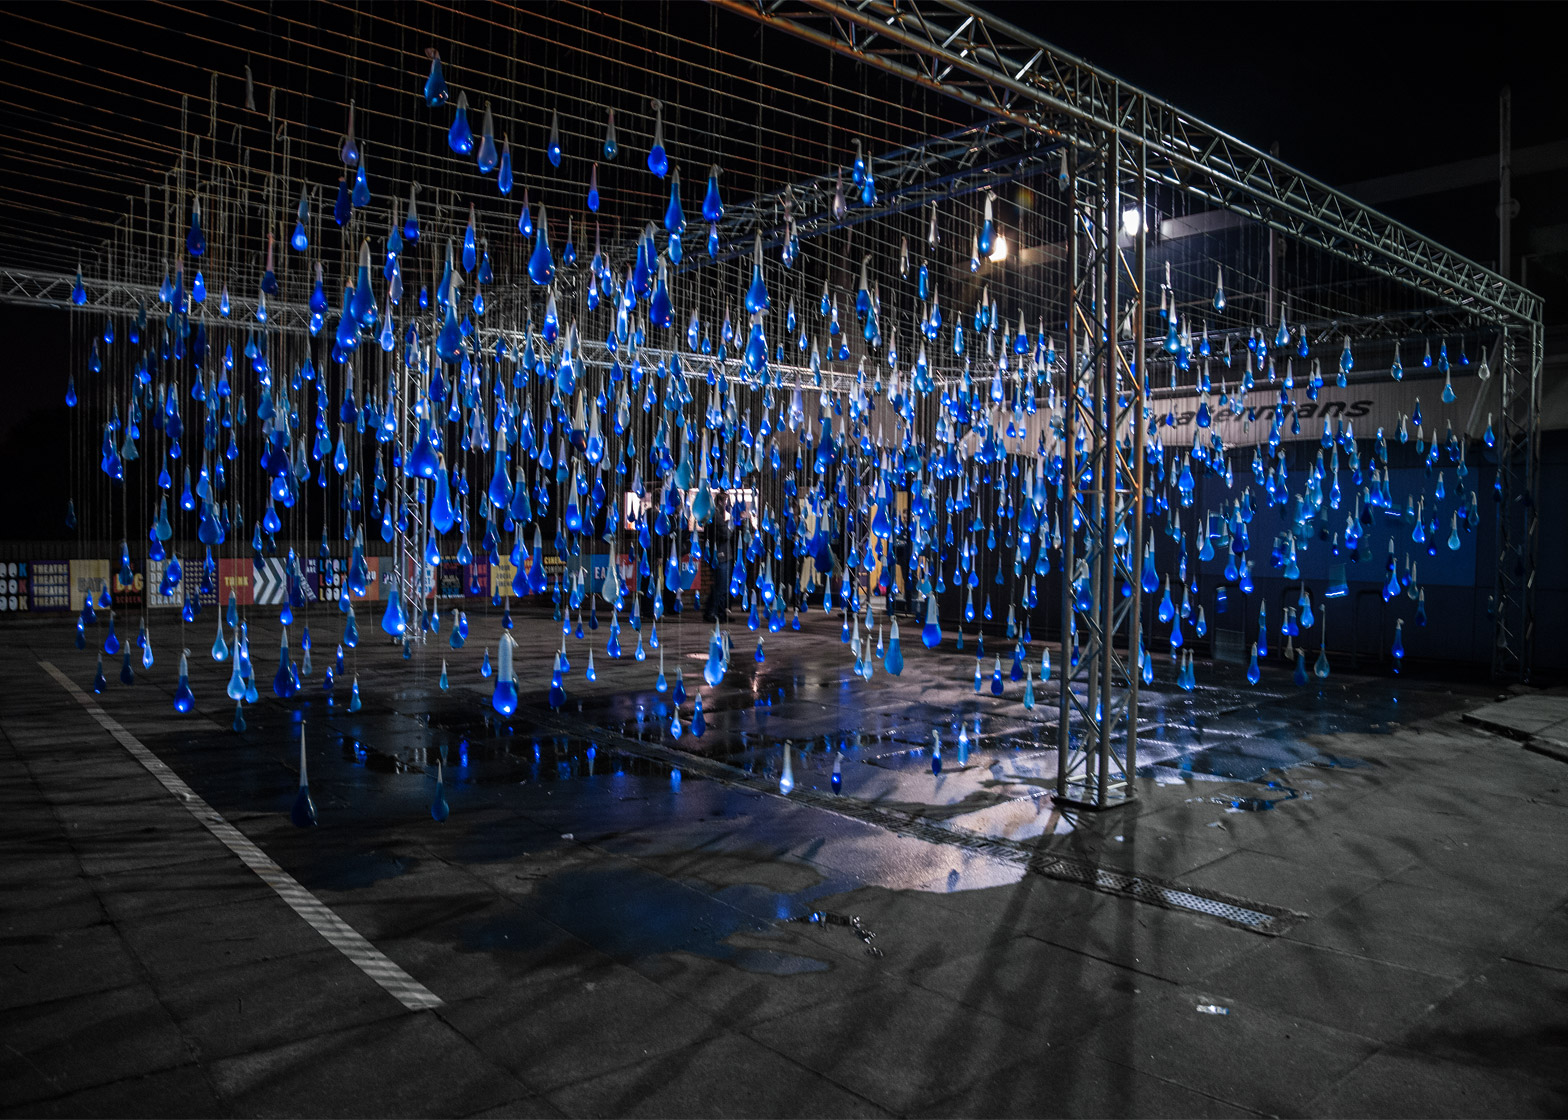 Luz-Interruptus_Rain-Interactive-installation_Condoms_Waterman-Arts-Centre_London3